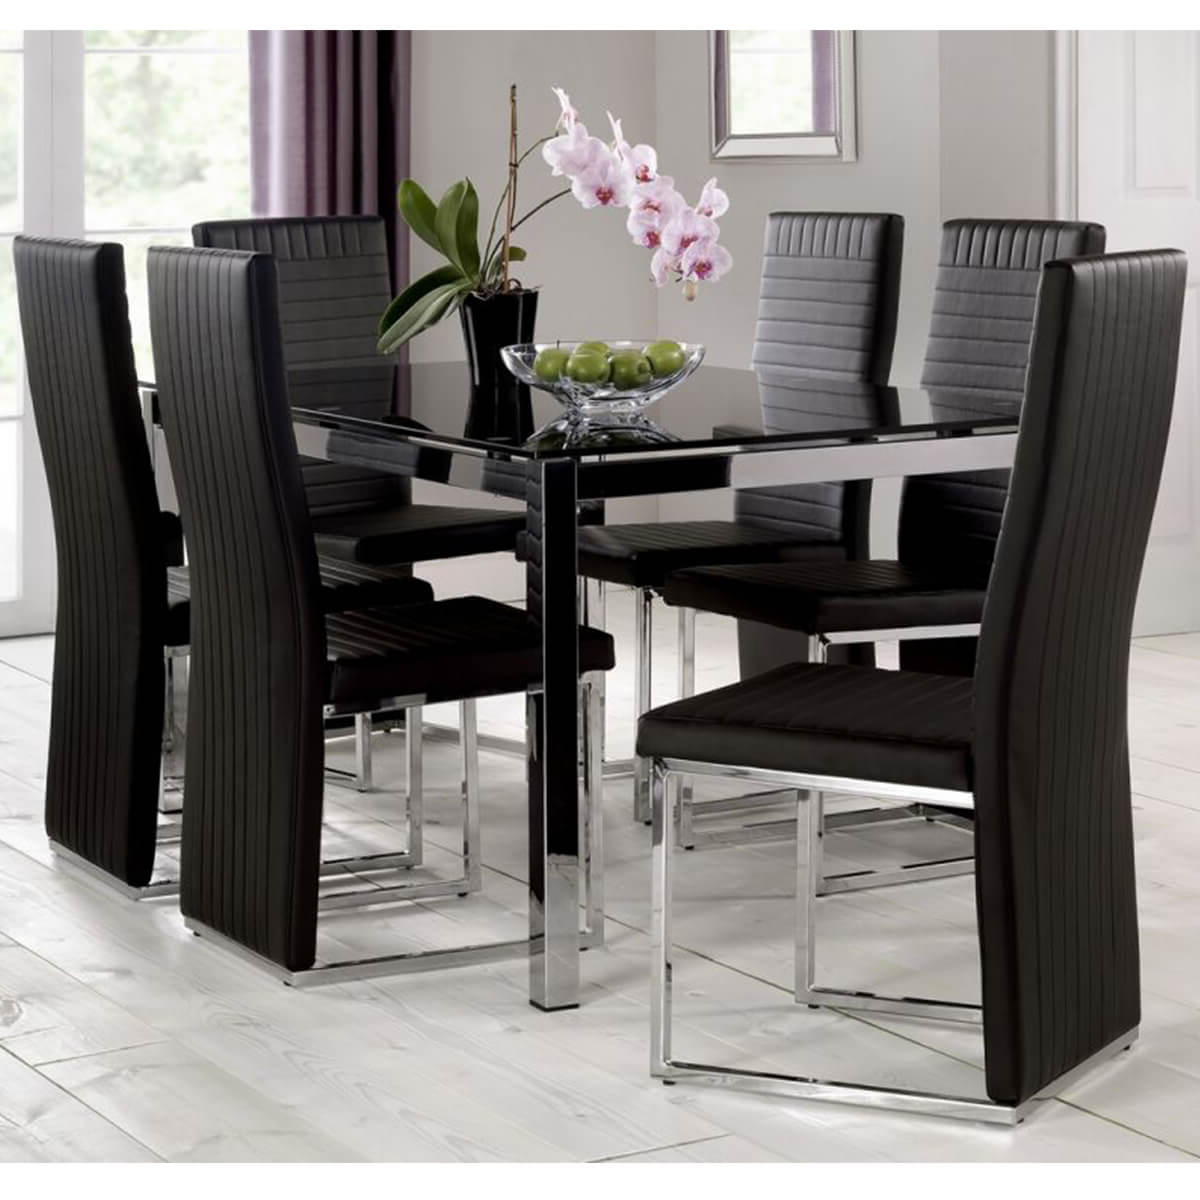 Fashionable Contemporary 6 Seating Rectangular Dining Tables Throughout Tempo Black Dining Table With Black Chairs (Gallery 6 of 30)